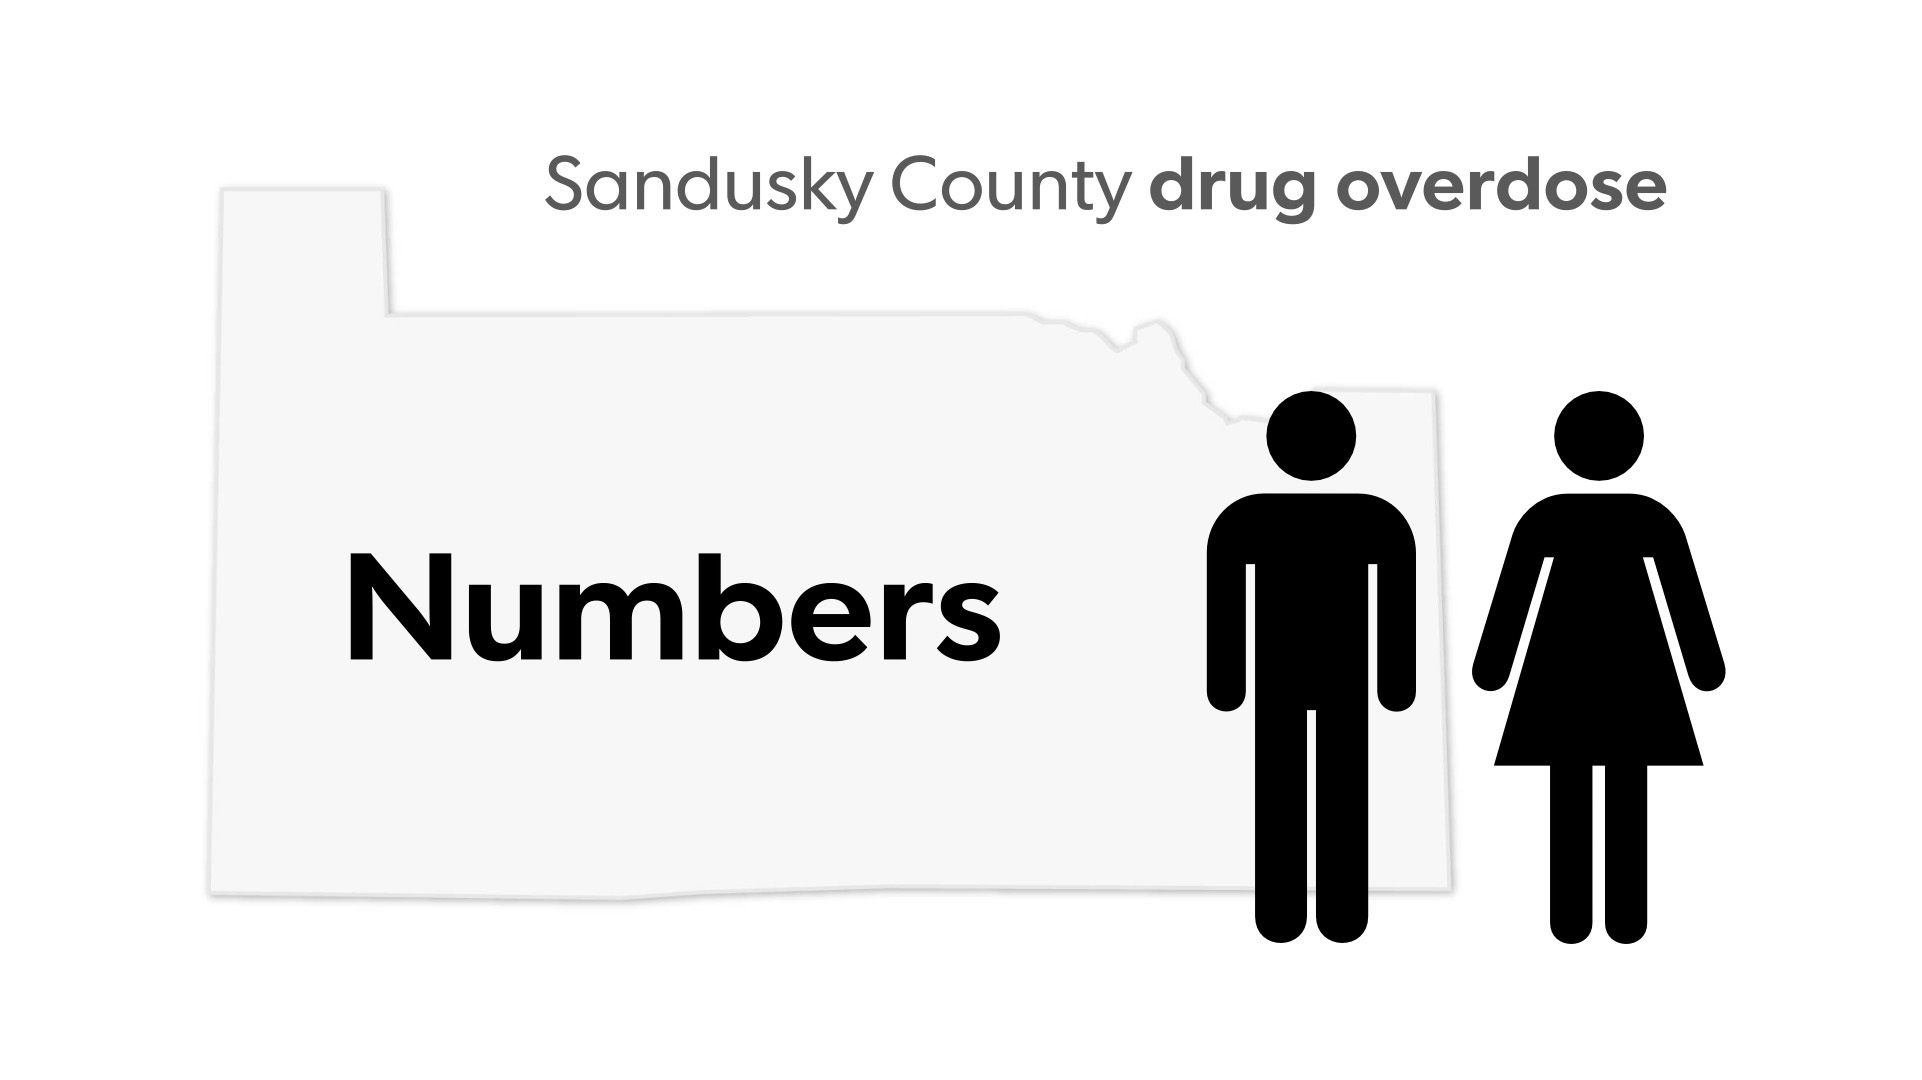 Drug overdose numbers in Sandusky County